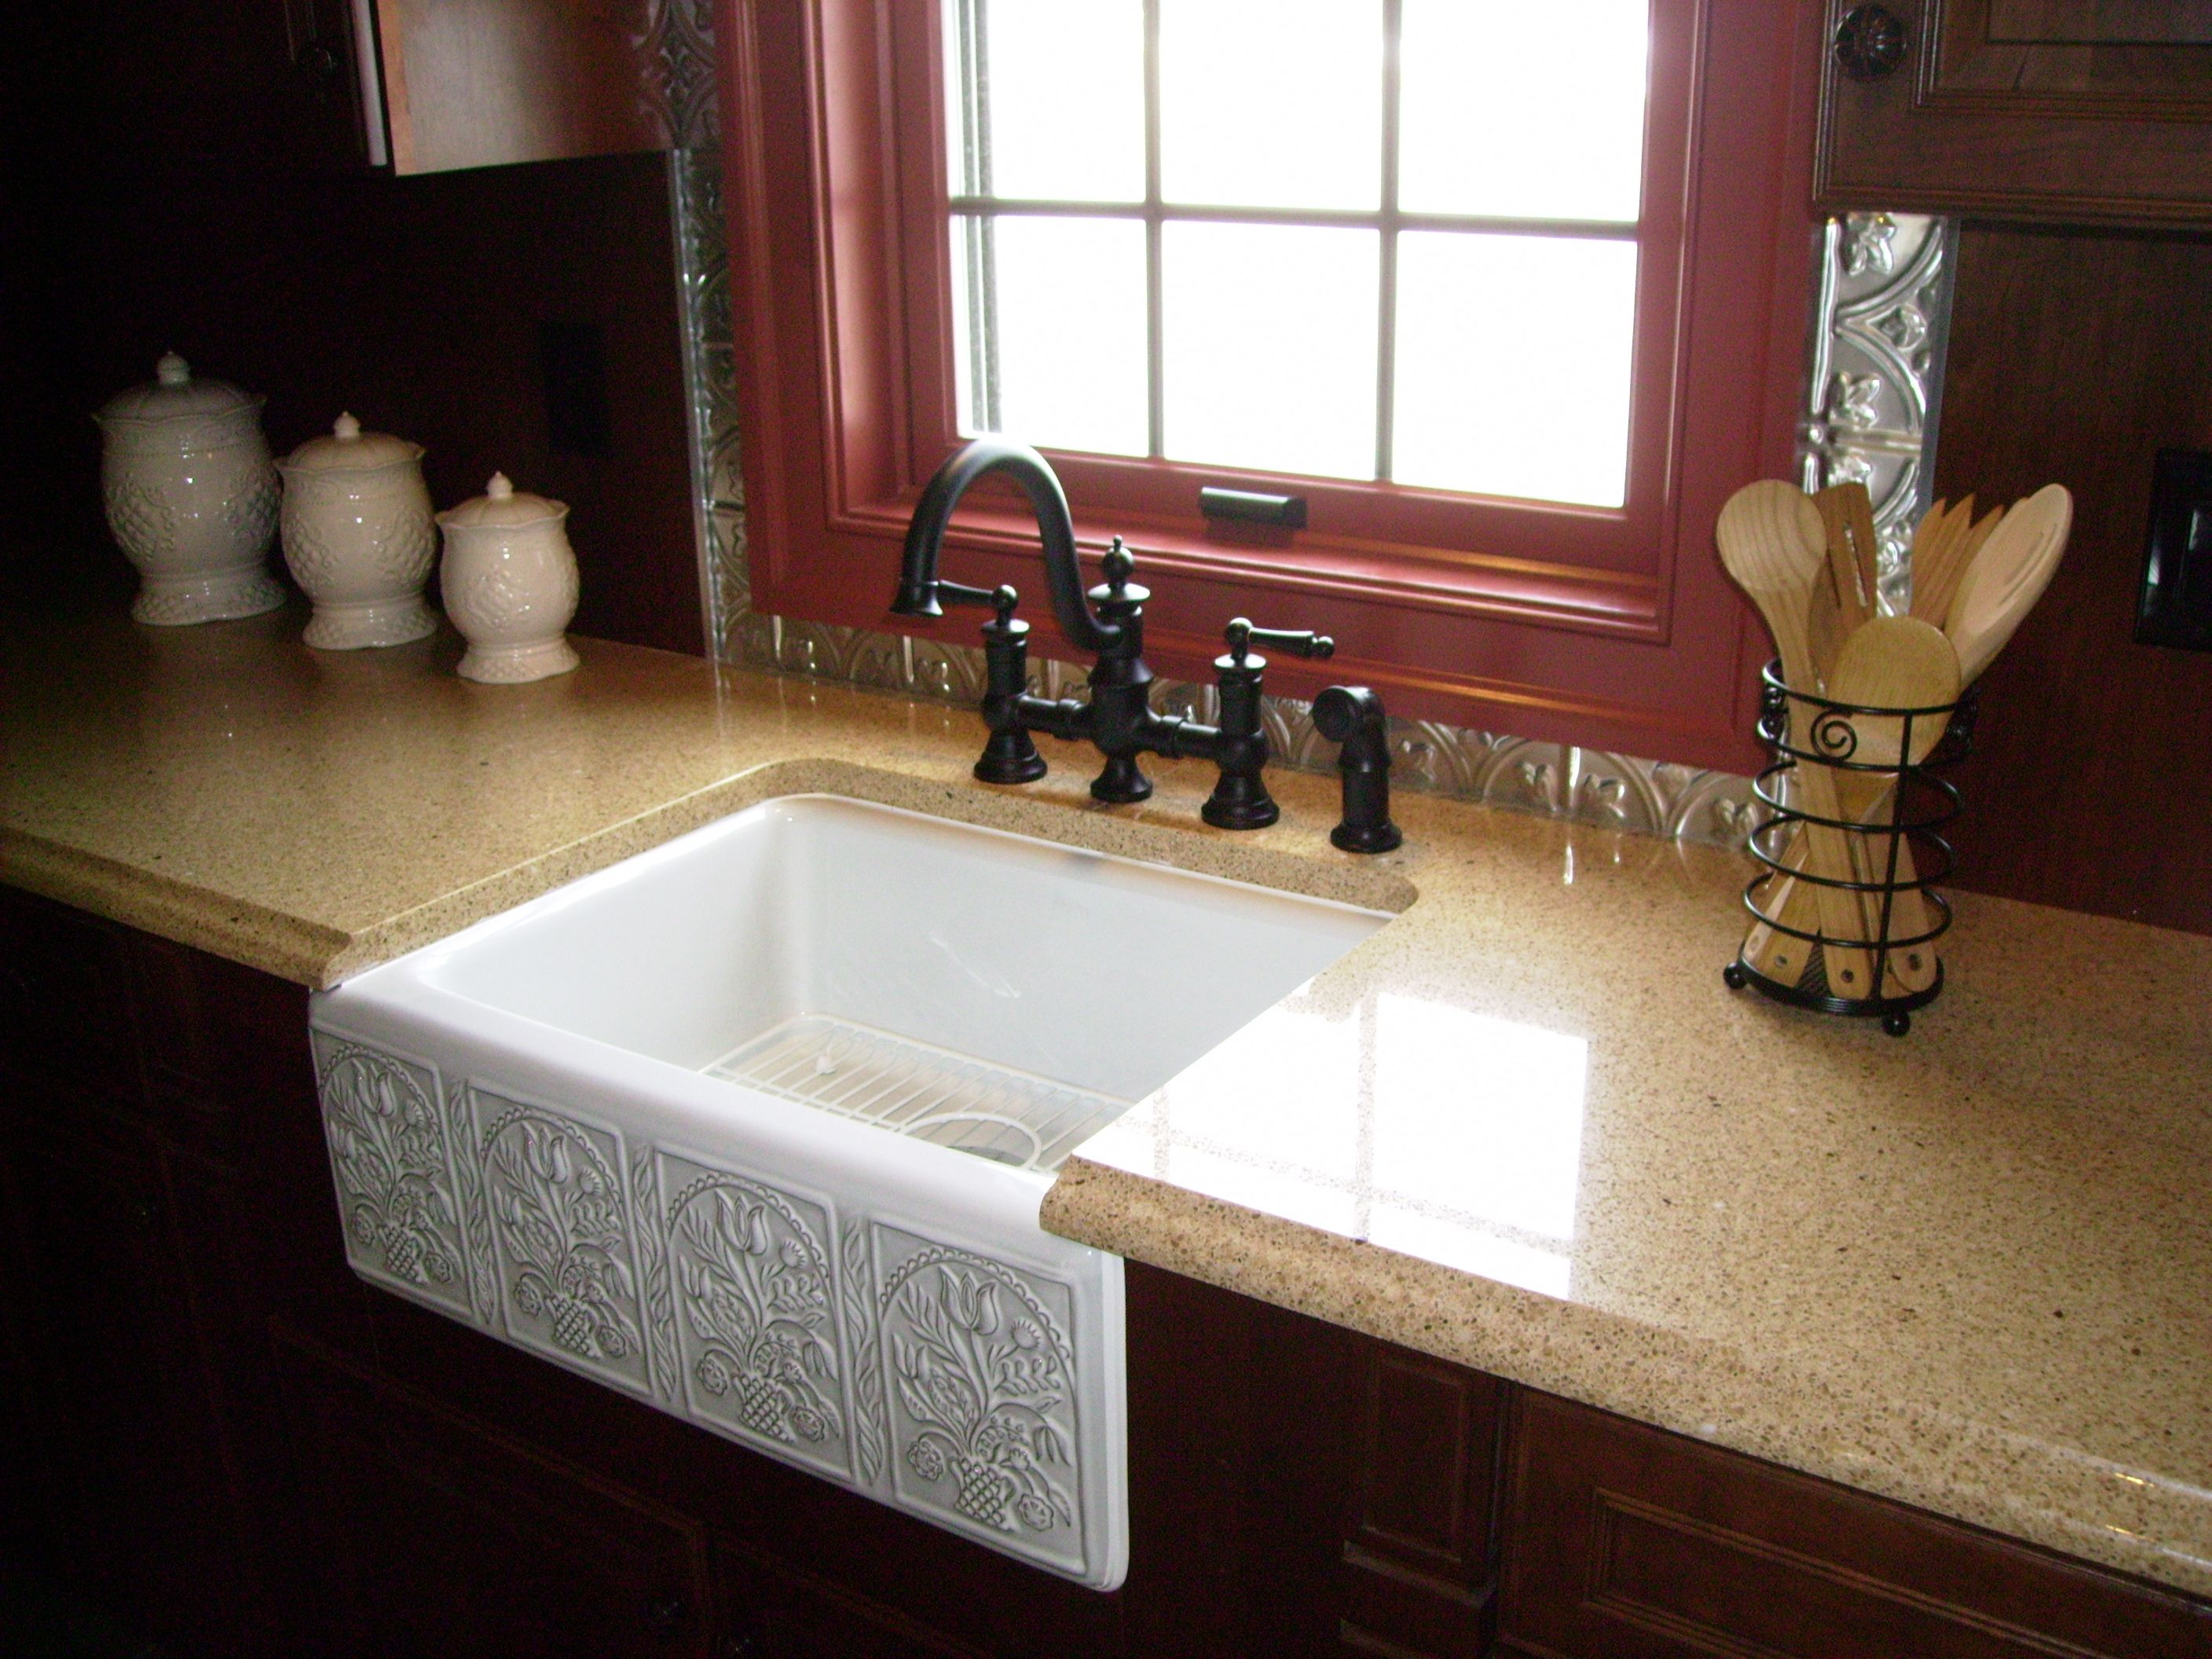 kitchen sink faucets oil rubbed bronze black faucet full size sinks